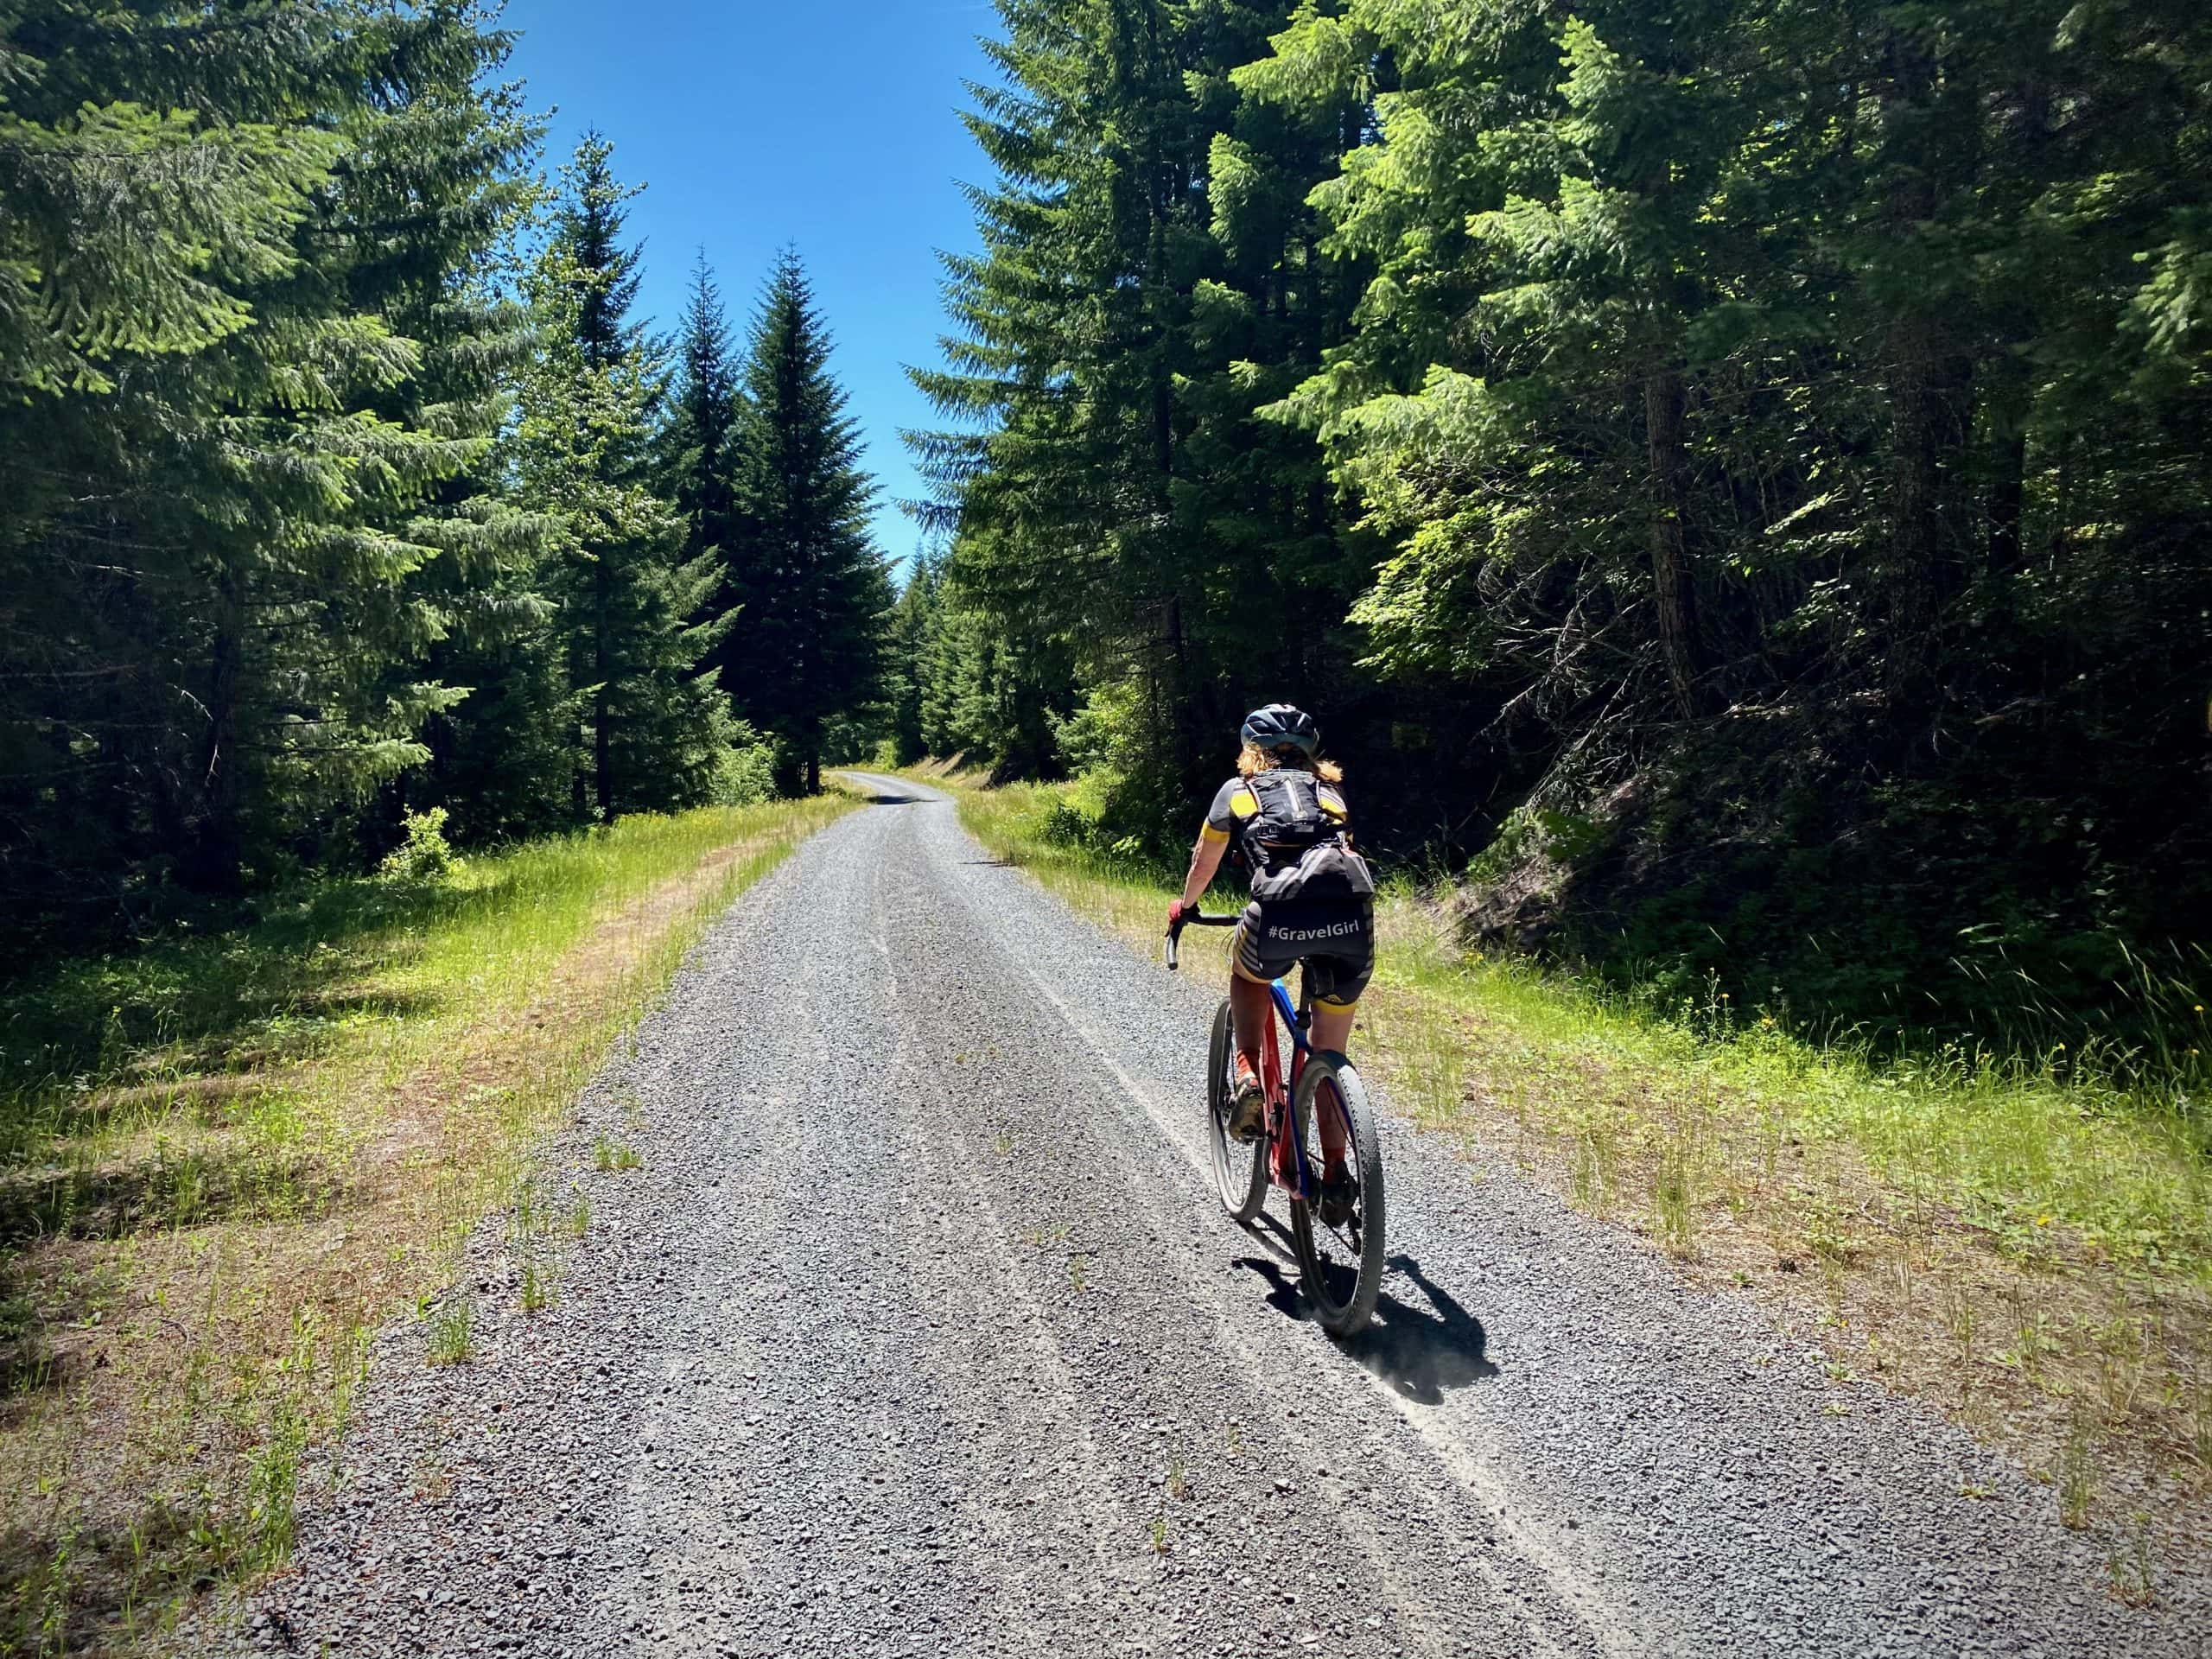 Cyclist on hard packed gravel road near Swift Creek in the Willamette National Forest.